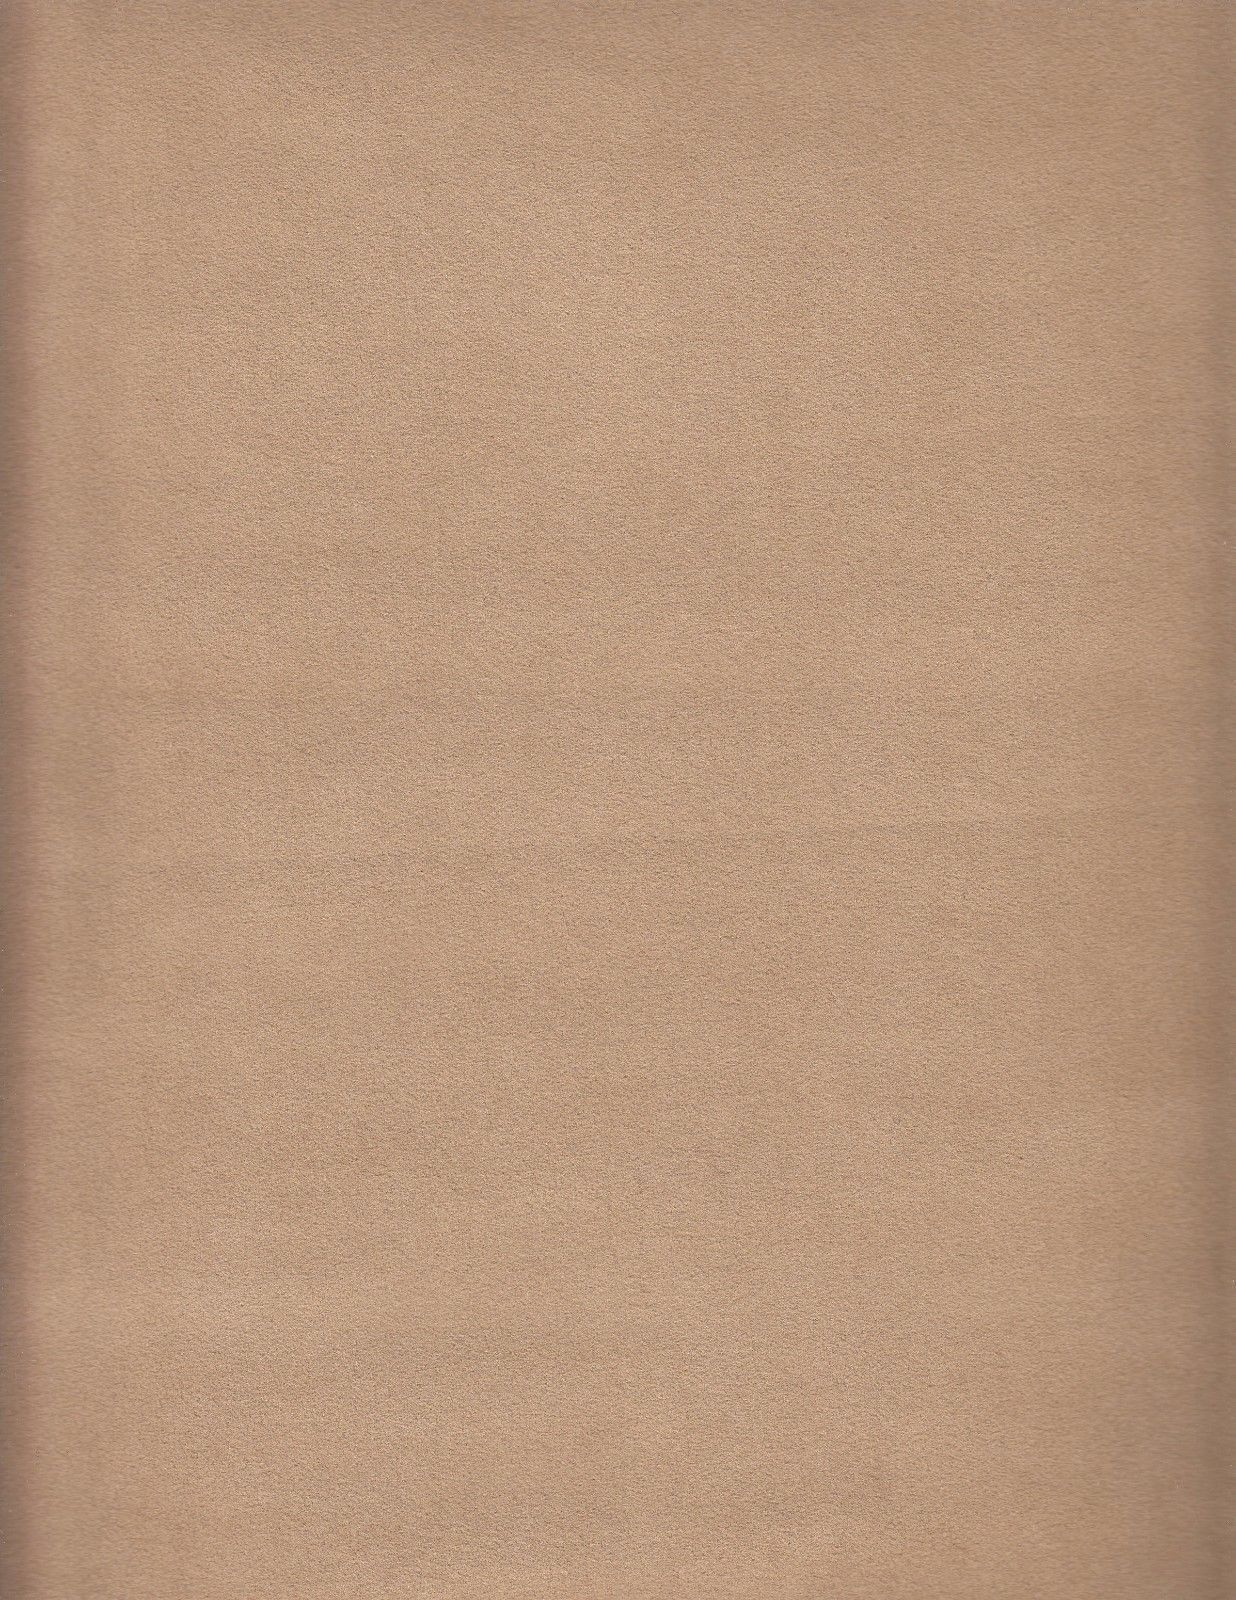 Toray Ambiance Ultrasuede New Saddle Tan Upholstery Fabric 1.125 yds EJ